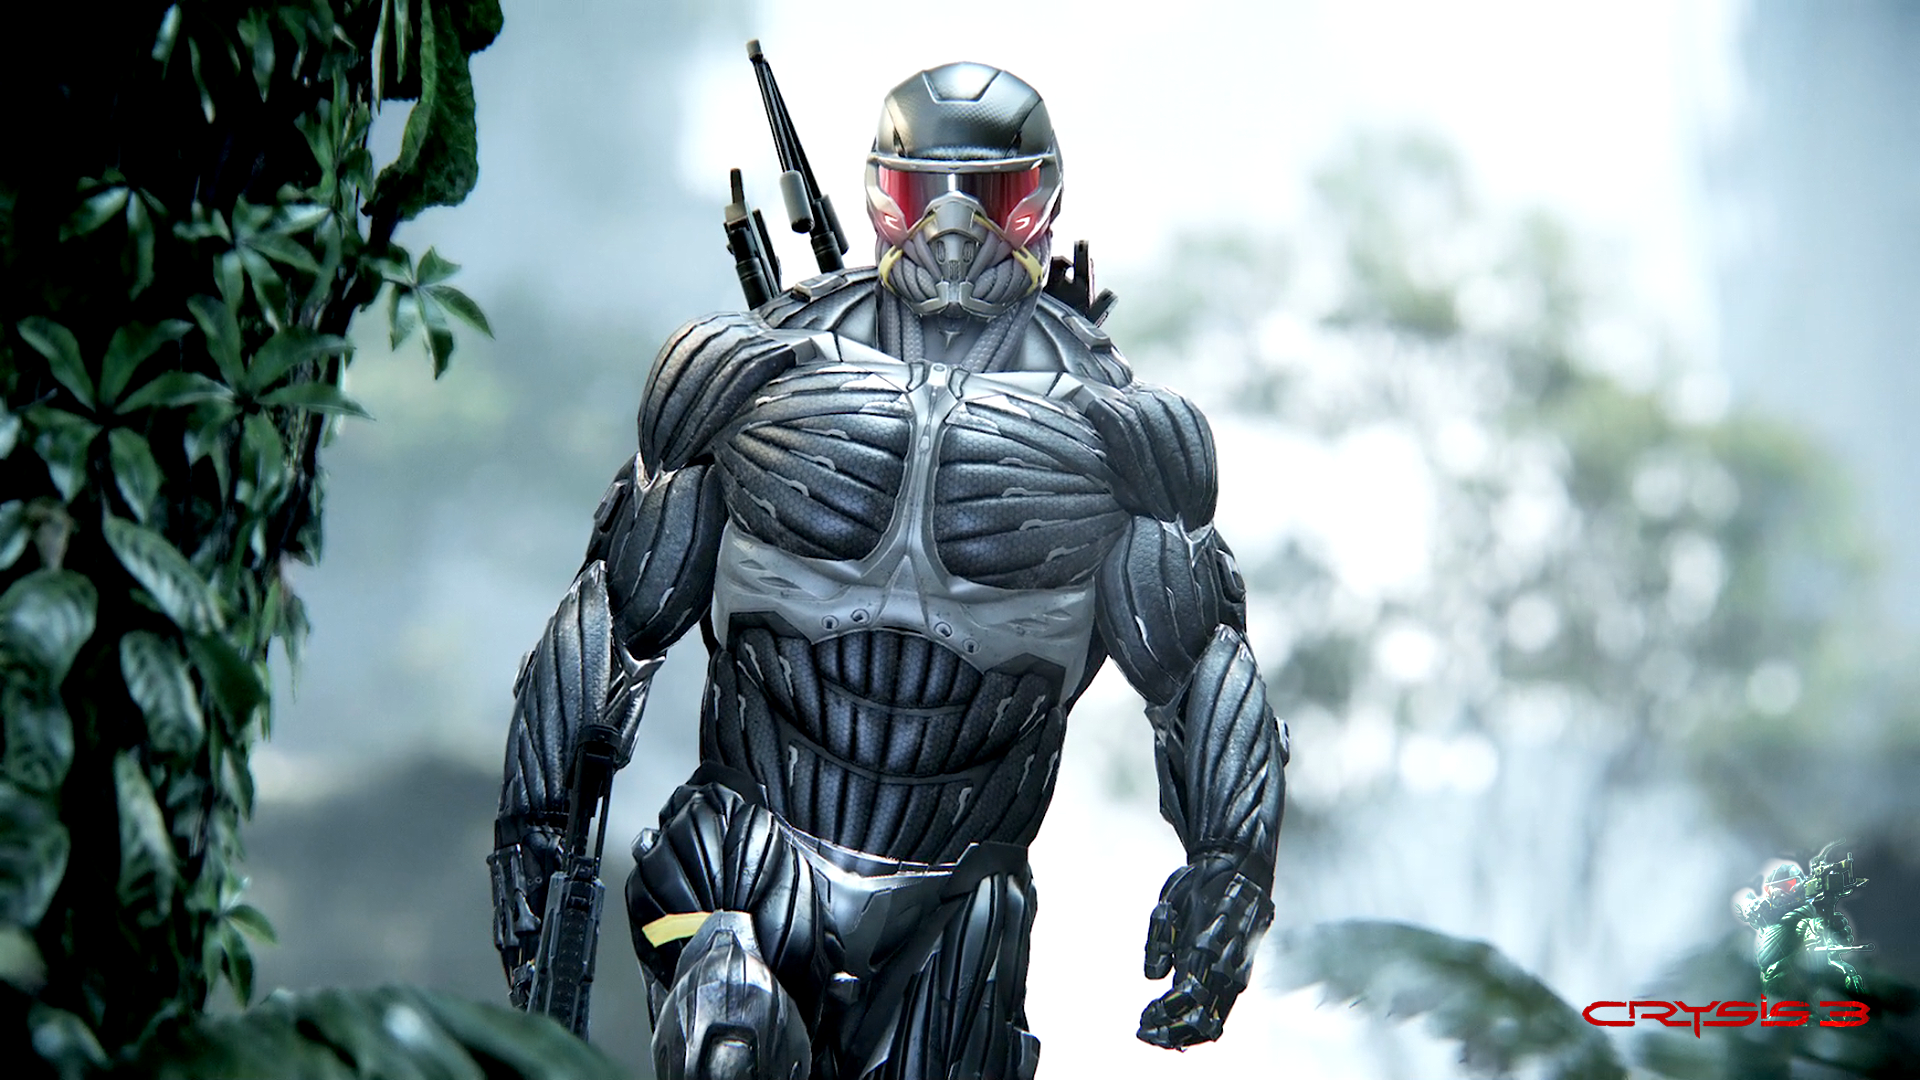 Top HDQ Crysis 3 Images